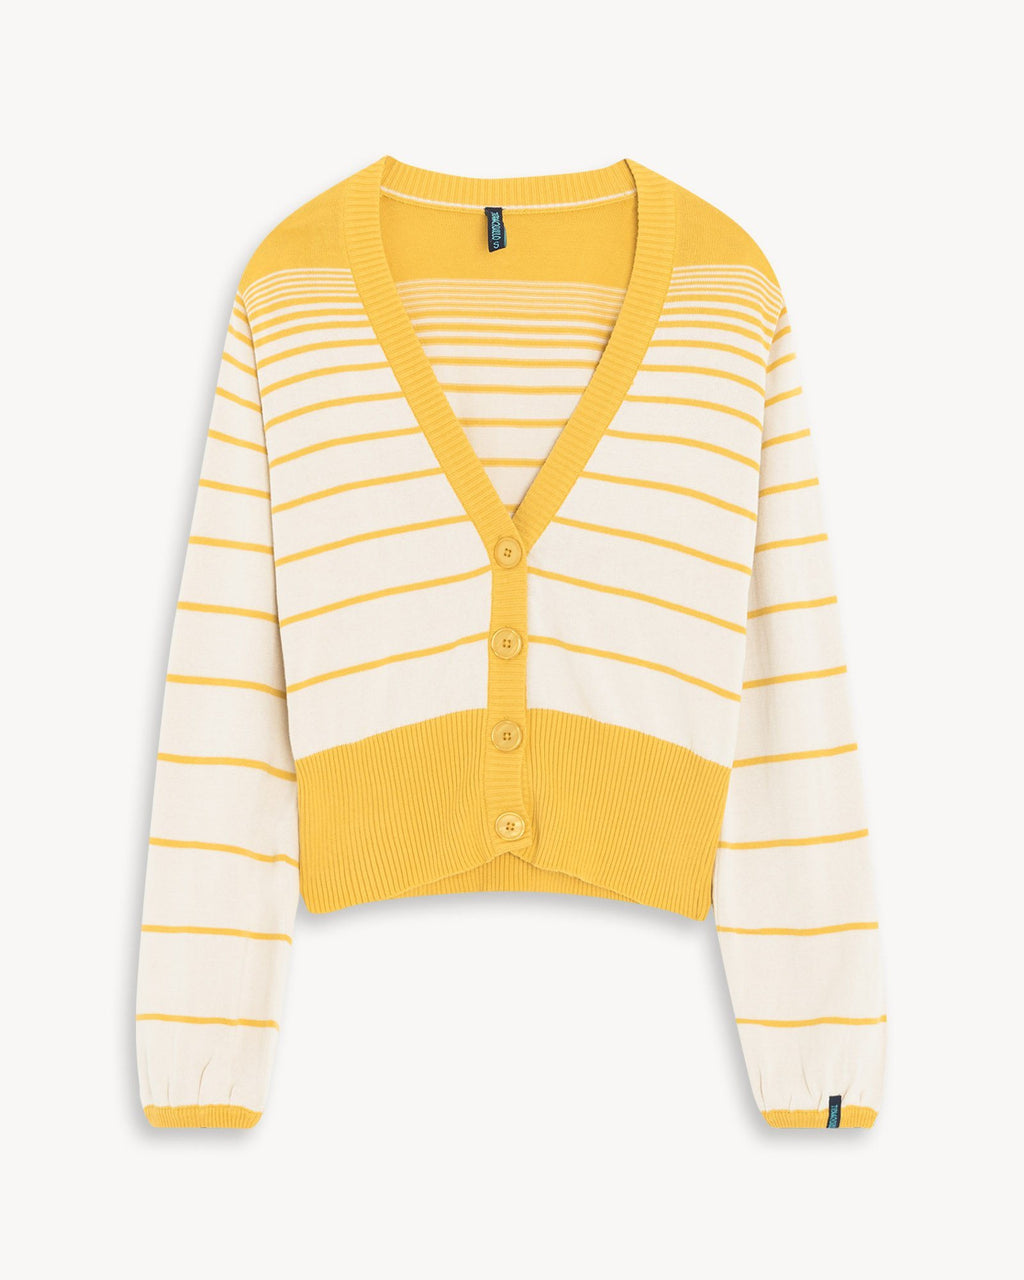 variant_1 | EN Jacket Yellow with Stripes Women Tranquillo | DE Strickjacke mit Knöpfen Gelb Gestreift Damen Tranquillo